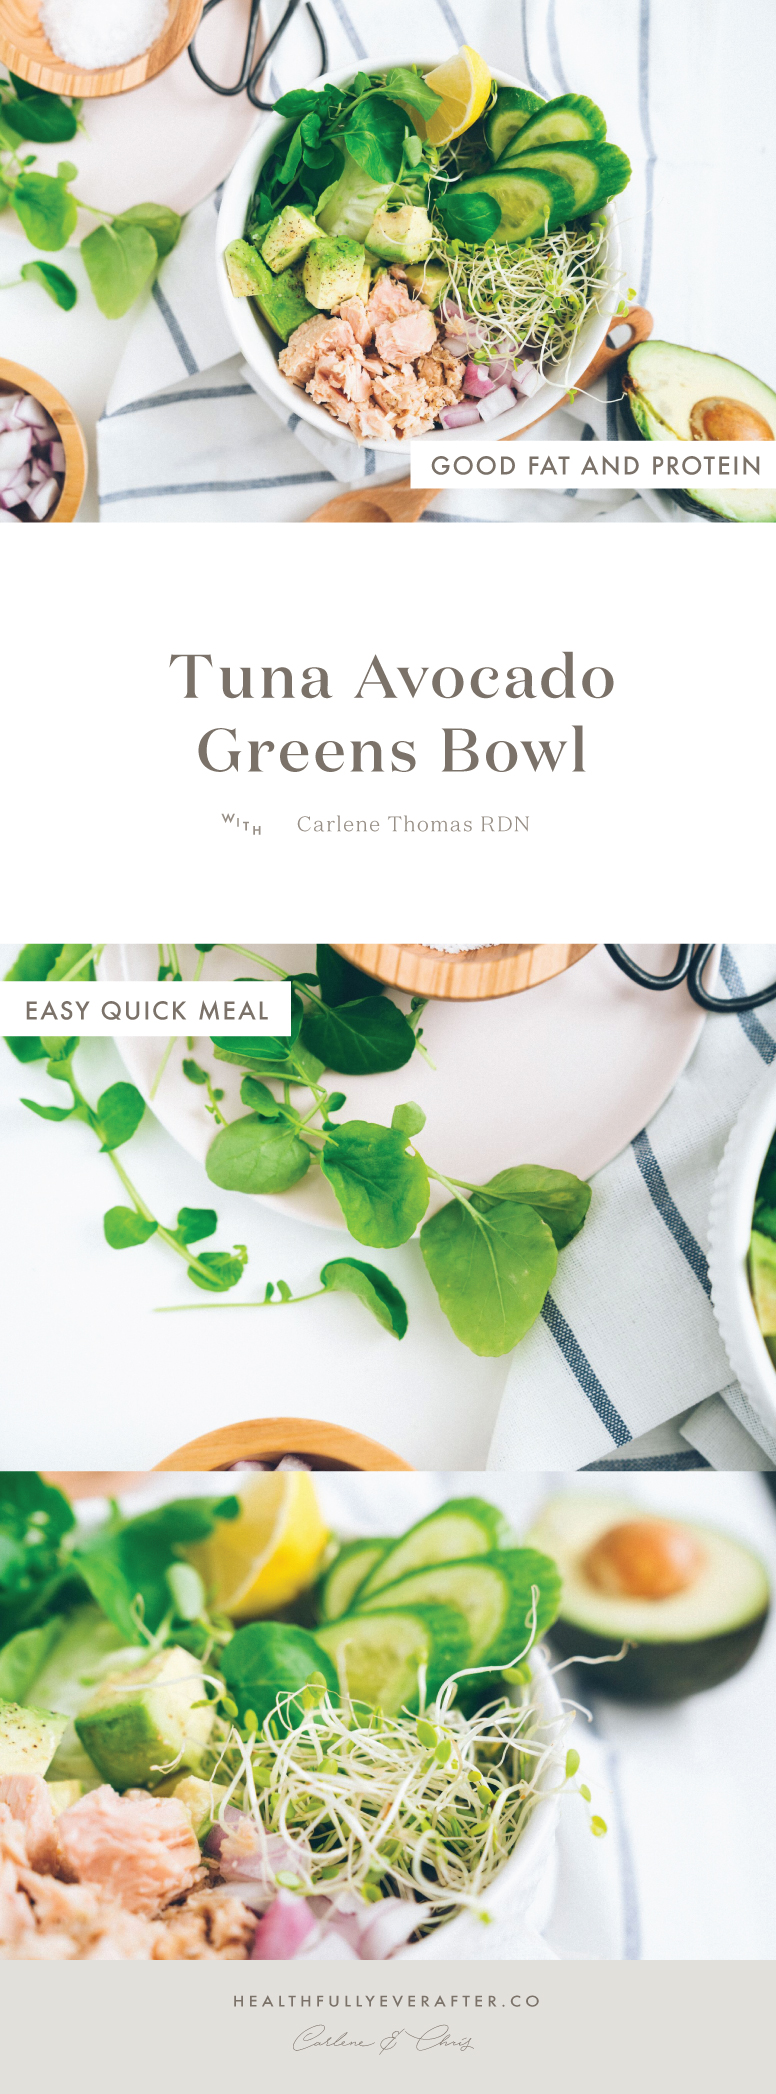 tuna avocado bowl